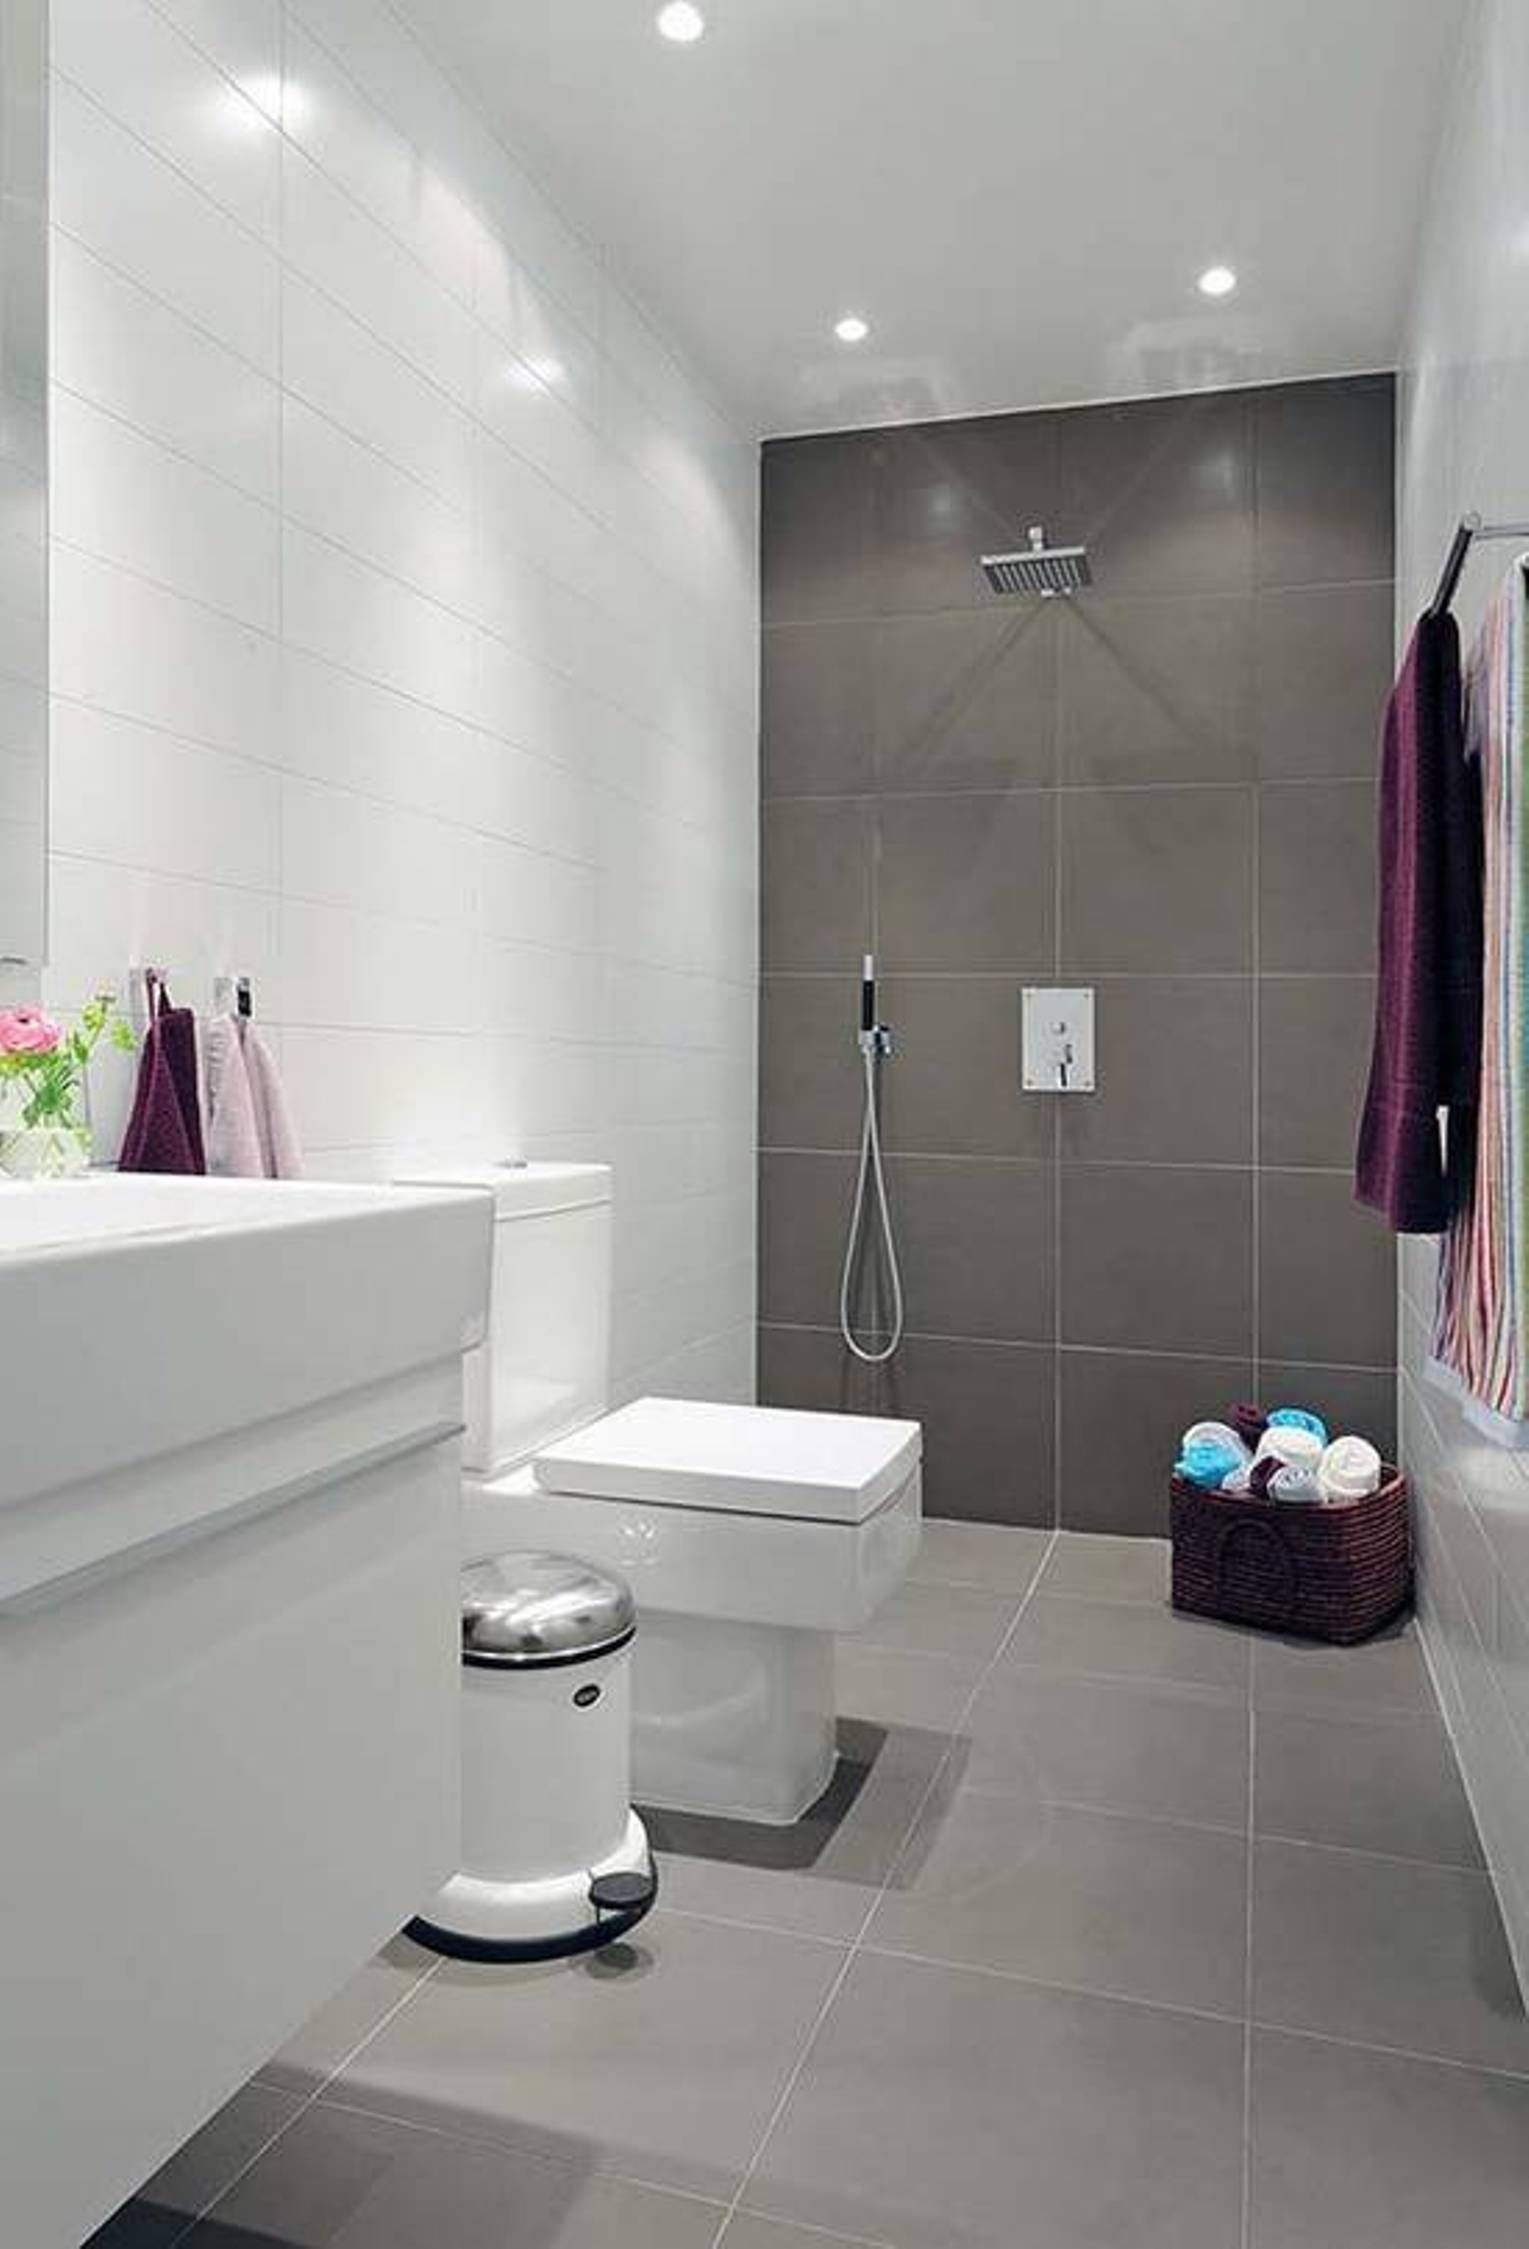 Its A Classic Elegant Color That Suits Many Styles And Design Tastes Heres An Inspiring Gallery Of Gray Bathrooms